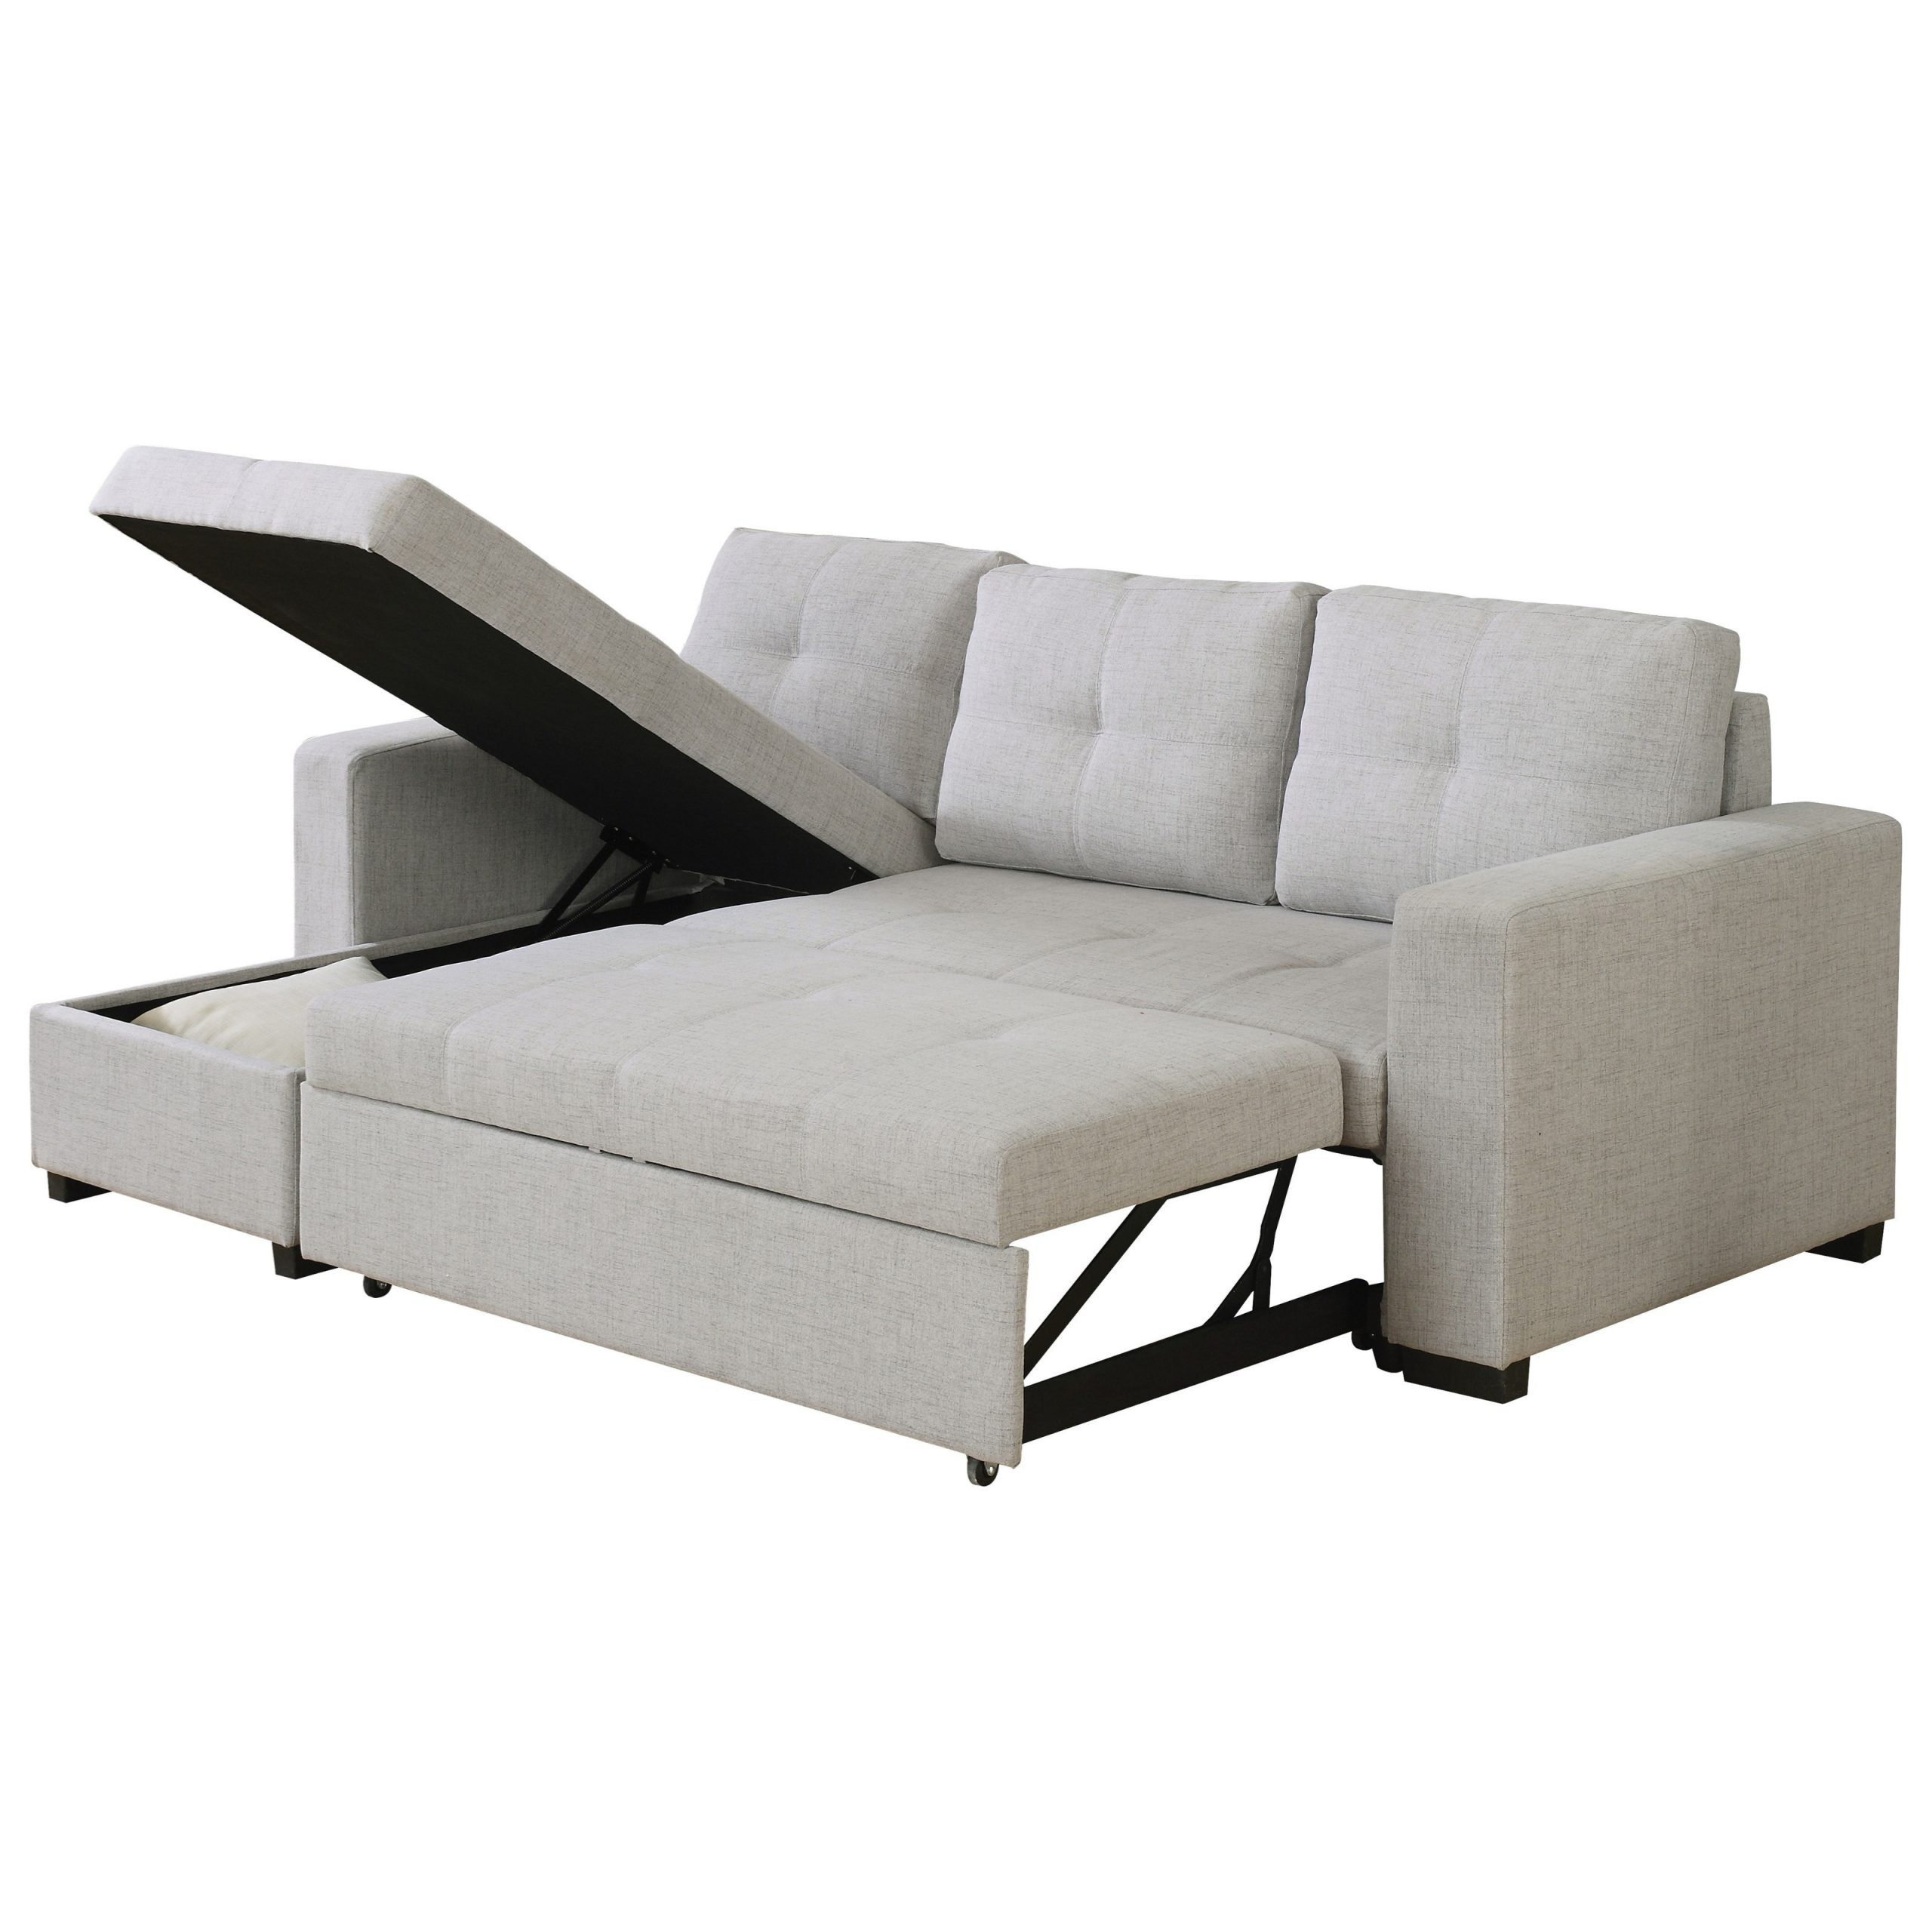 Popular Everly Beige Reversible Sectional Sofa With Sleeper Throughout Copenhagen Reversible Small Space Sectional Sofas With Storage (View 13 of 25)